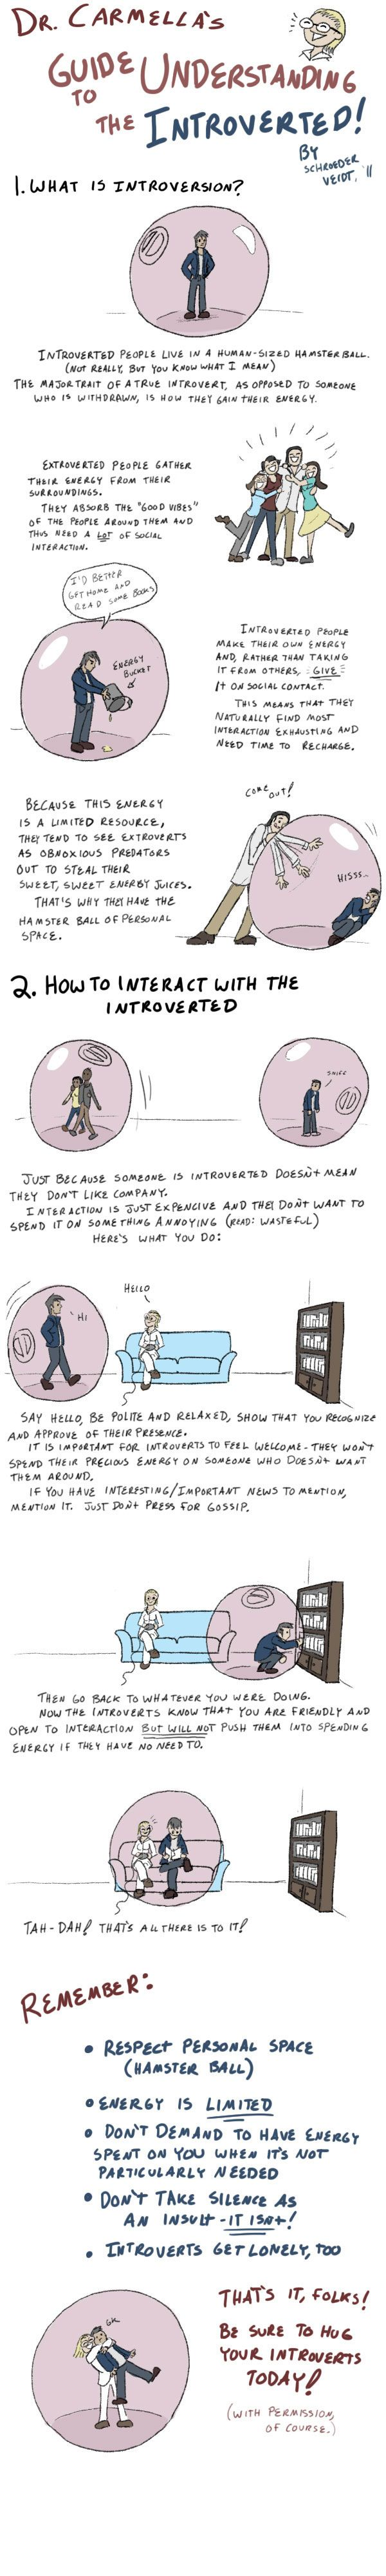 Dr. Carmella's Guide to Understanding the Introverted